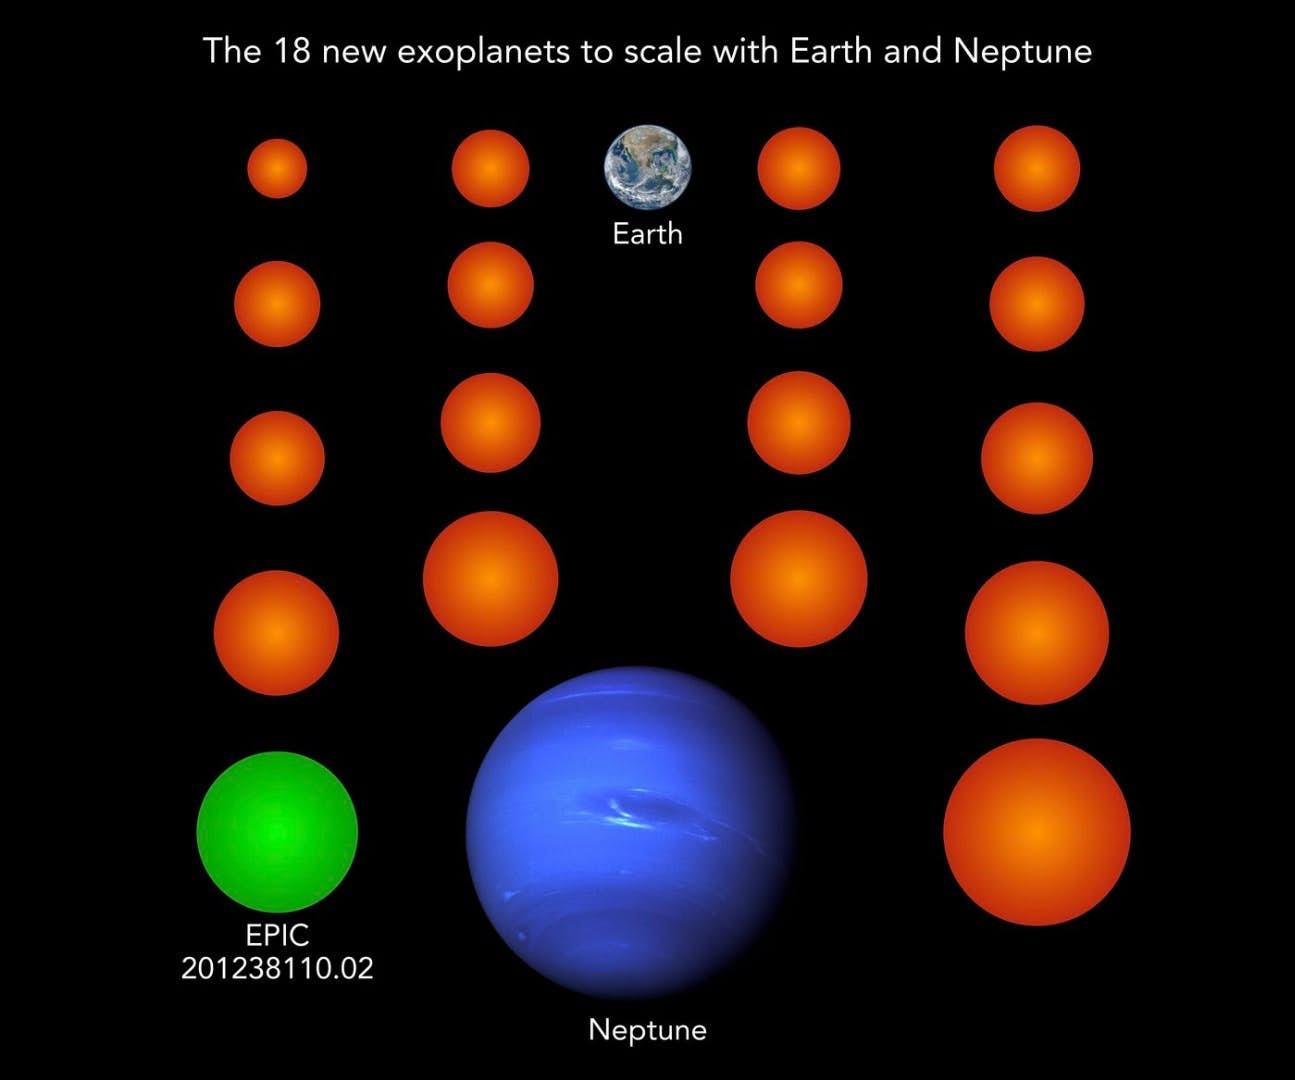 The 18 new exoplanets, to scale, as compared to Earth and Neptune. The green one, named EPIC 201238110.02, also appears to be cool enough to host liquid water on its surface